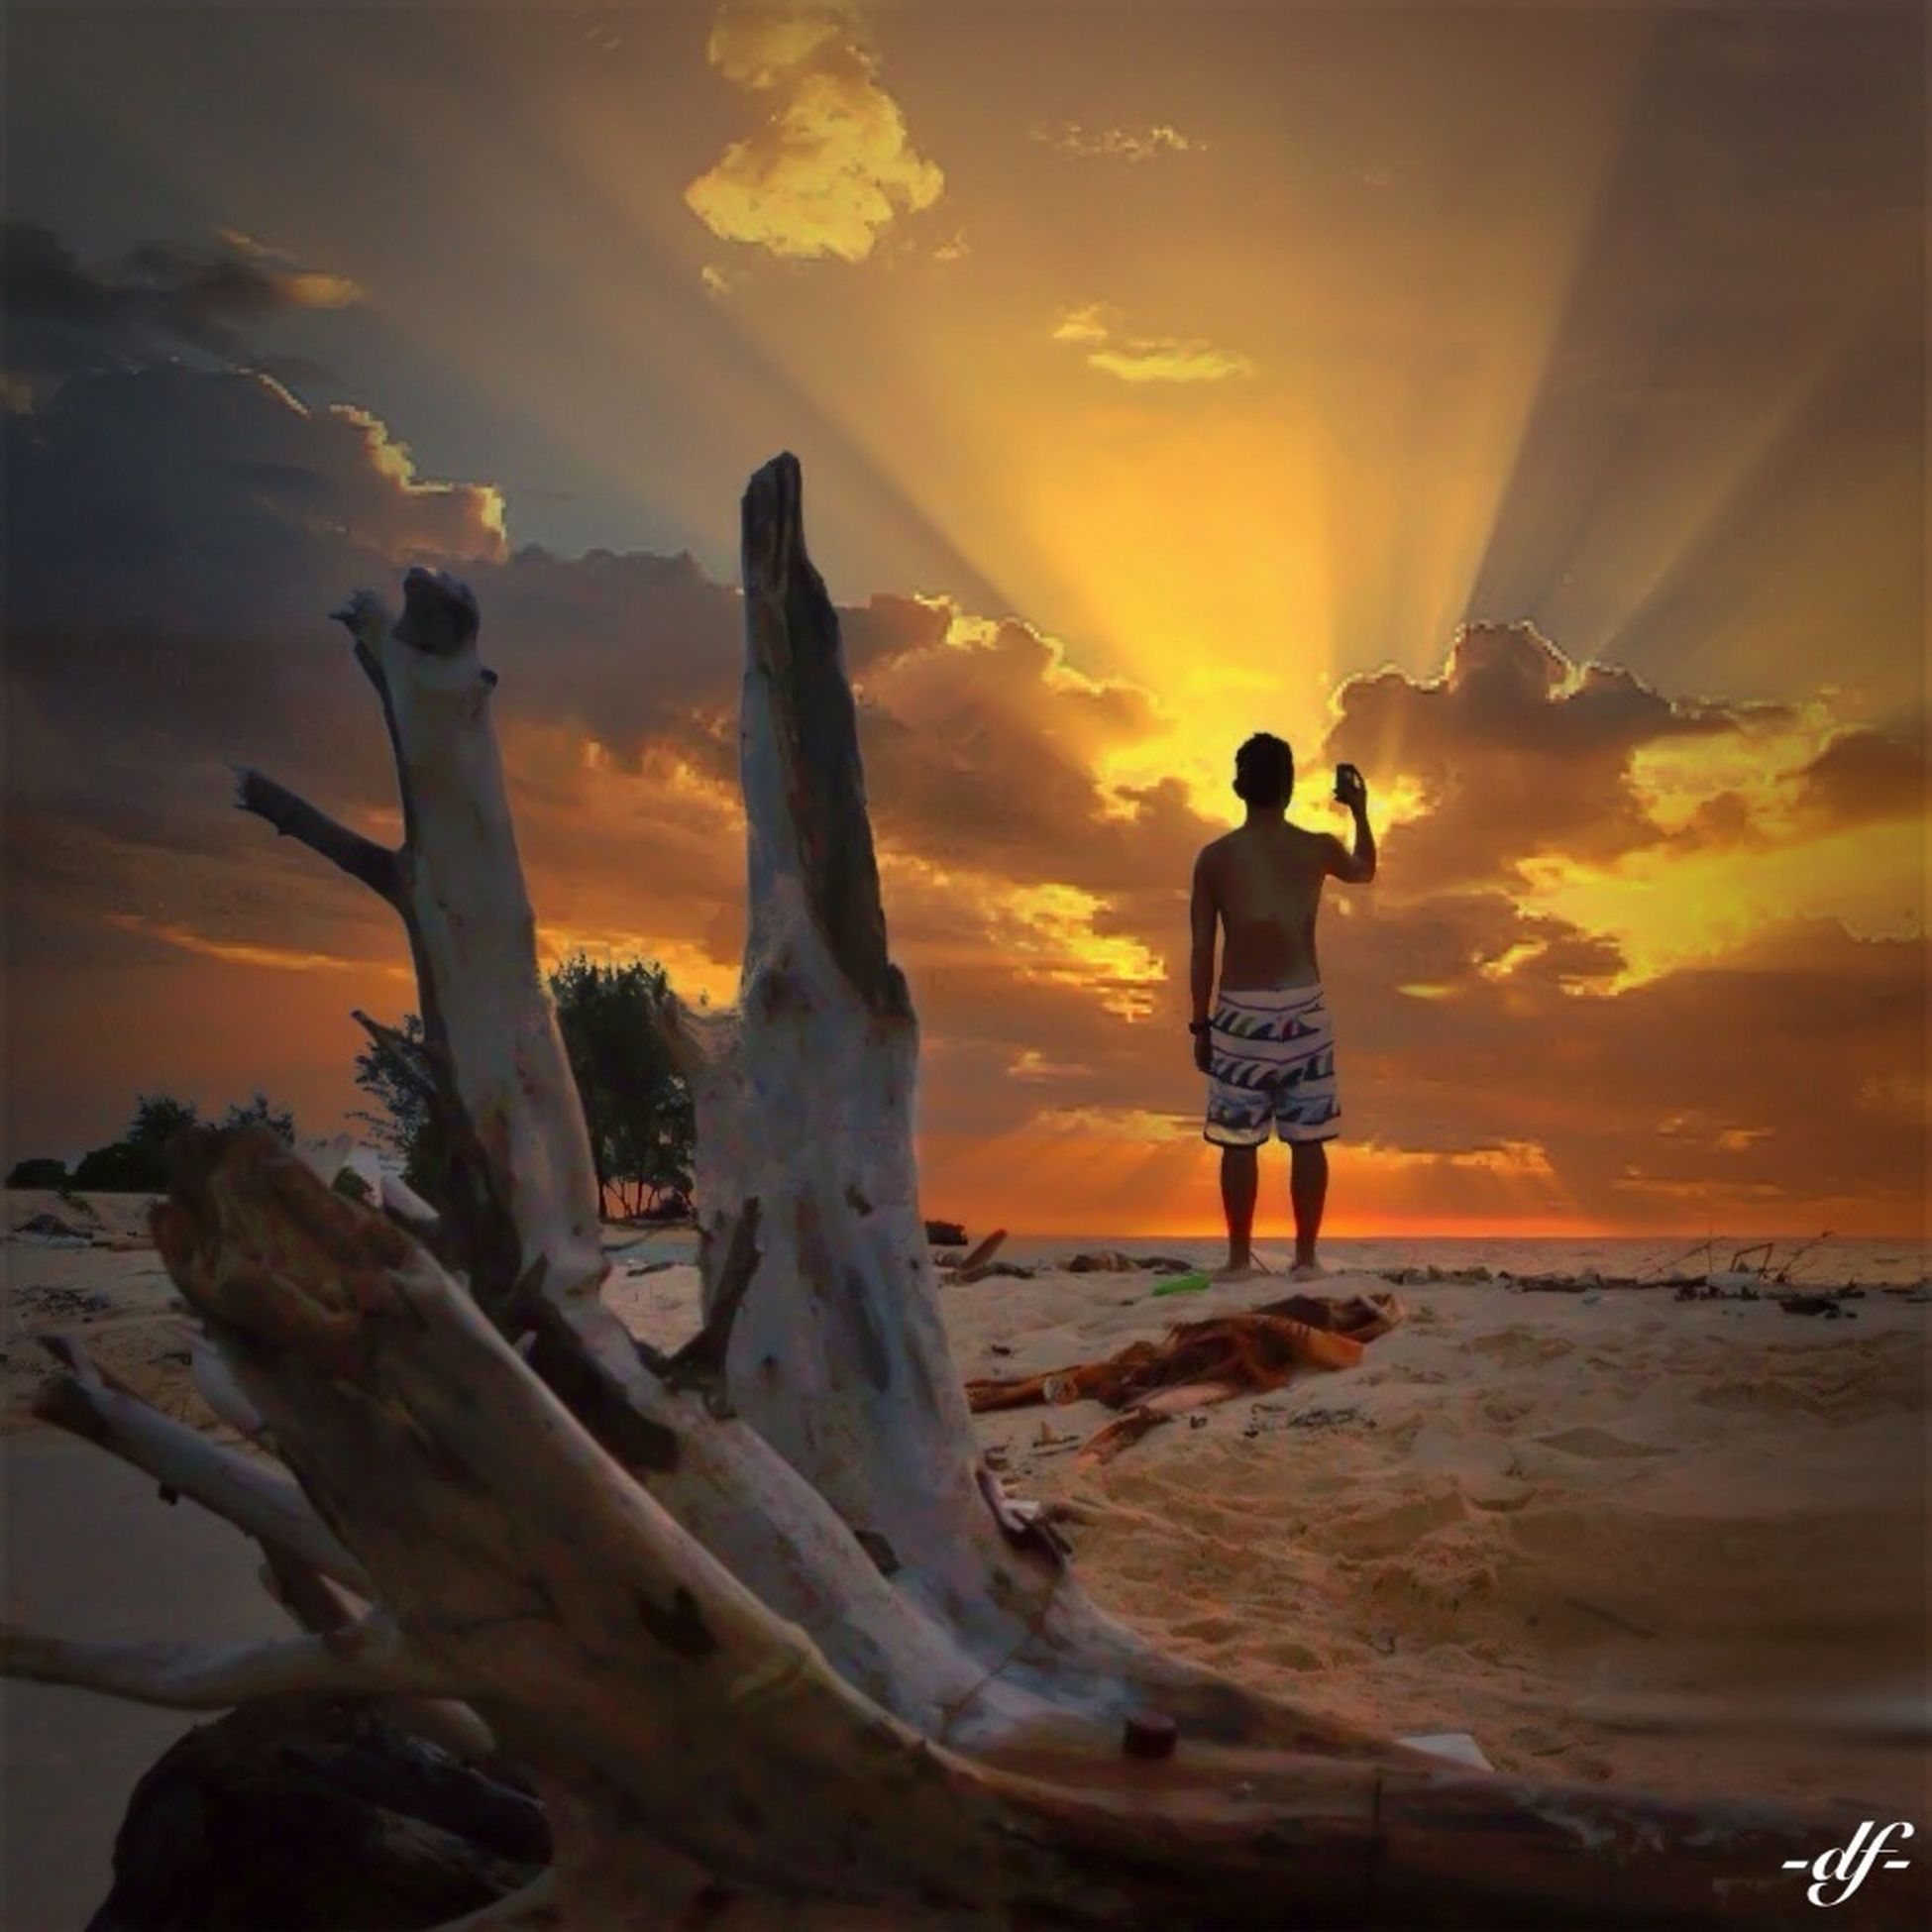 silhouette, outdoors, lifestyles, men, standing, leisure activity, real people, sun, sunset, women, beach, togetherness, tree trunk, rear view, lens flare, light, escapism, getting away from it all, weekend activities, recreational pursuit, vacations